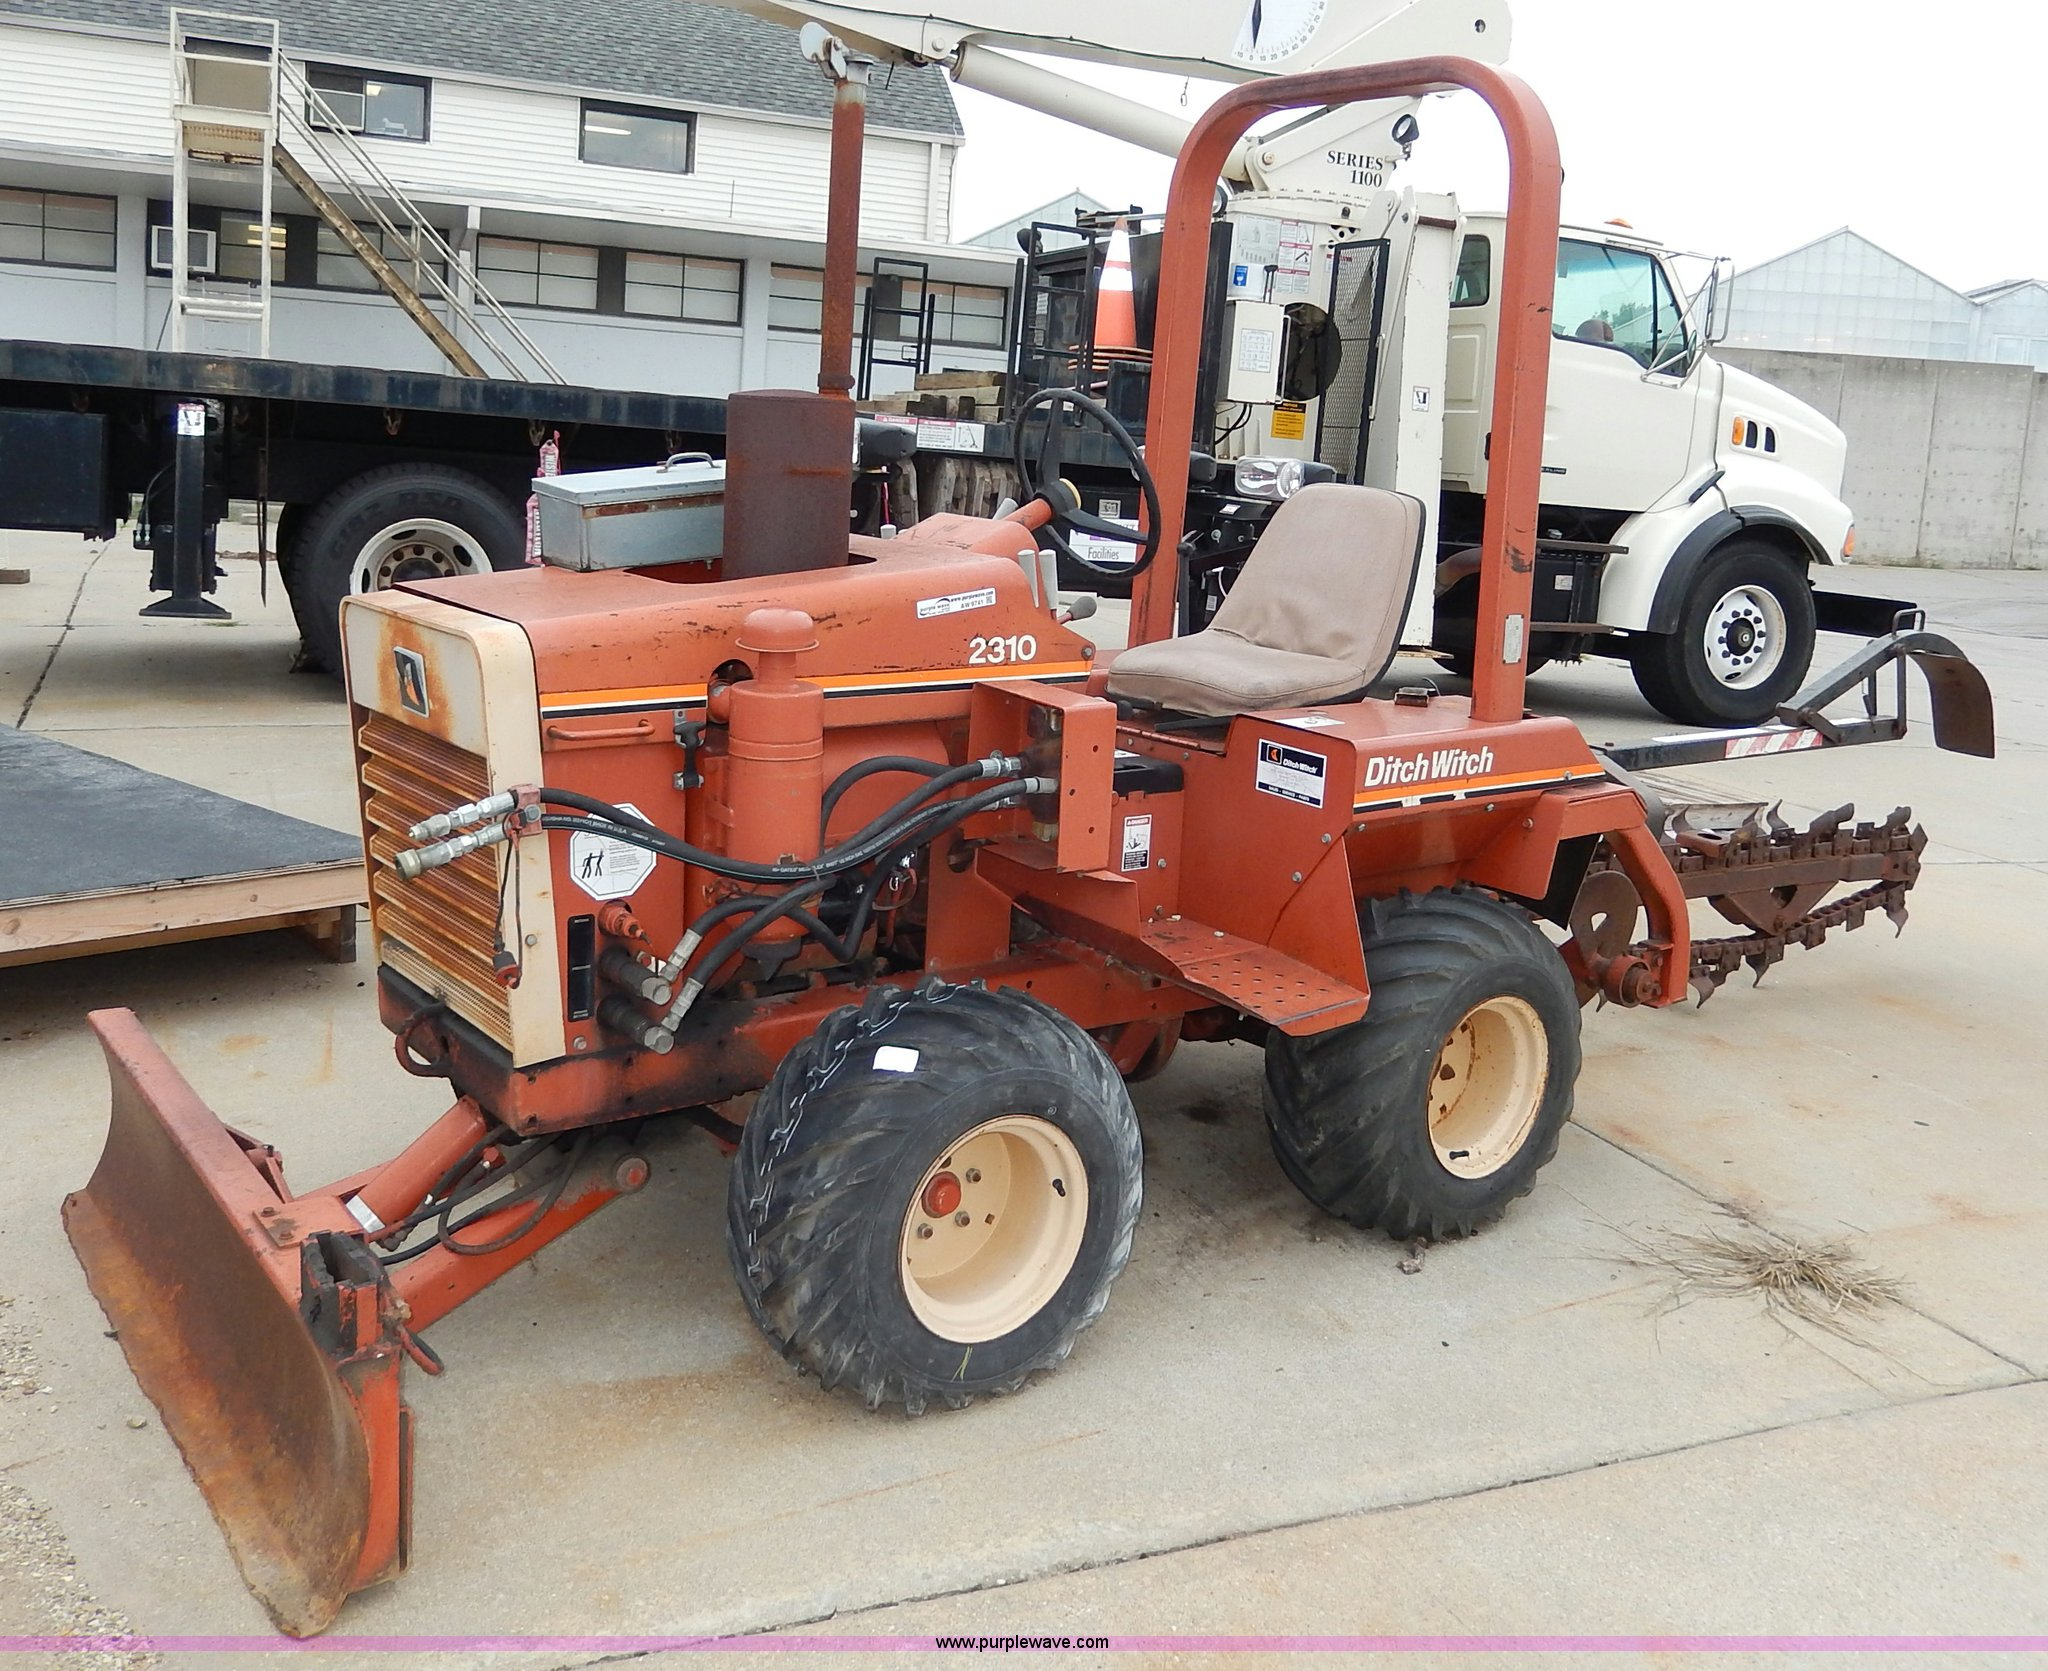 1988 ditch witch 2310 trencher item aw9741 sold septemb rh purplewave com ditch witch 2310 service manual ditch witch 2310 repair manual